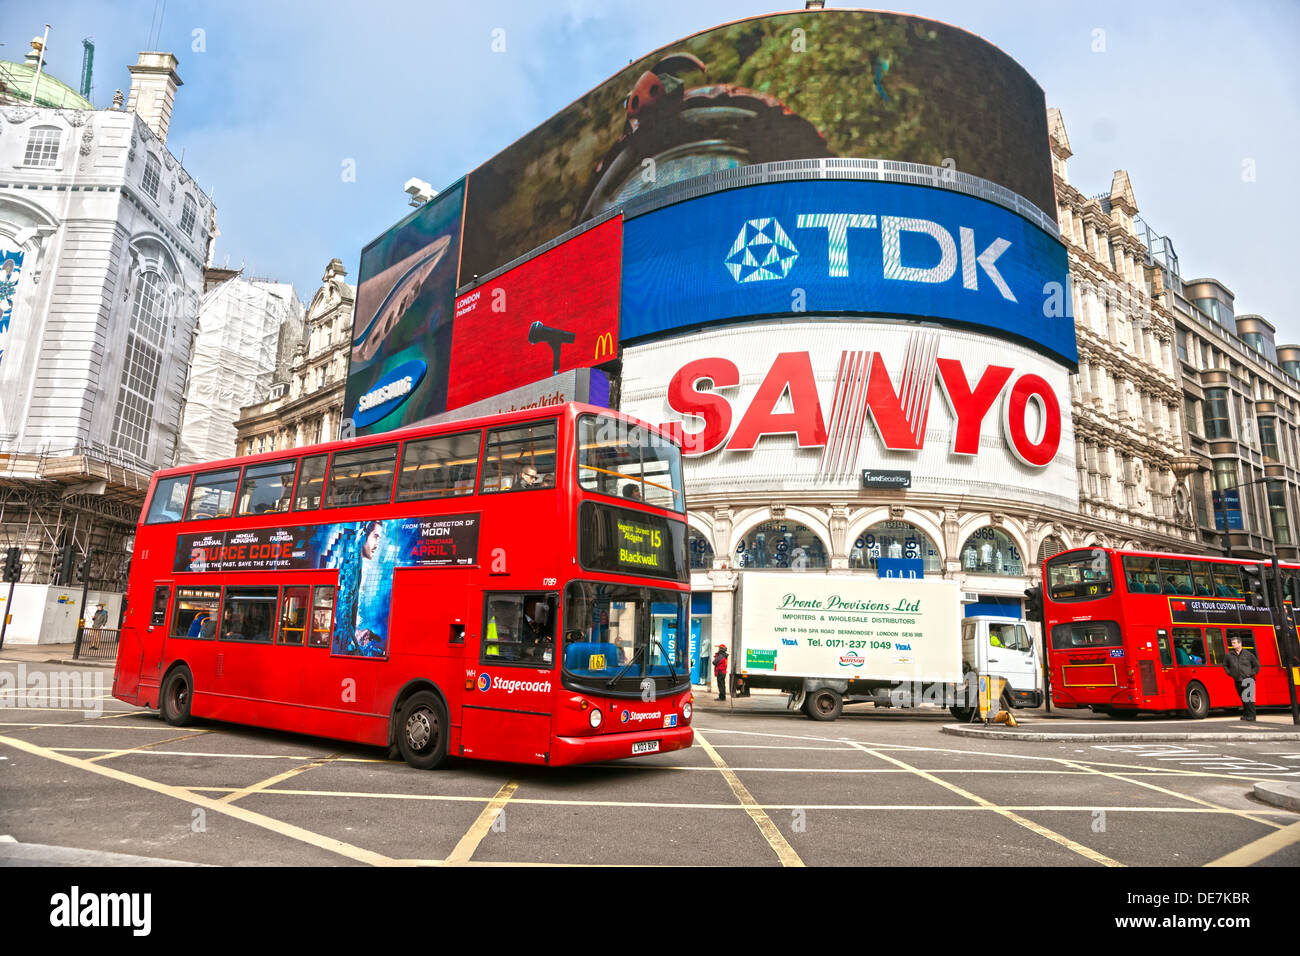 Piccadilly Circus, London, UK. - Stock Image